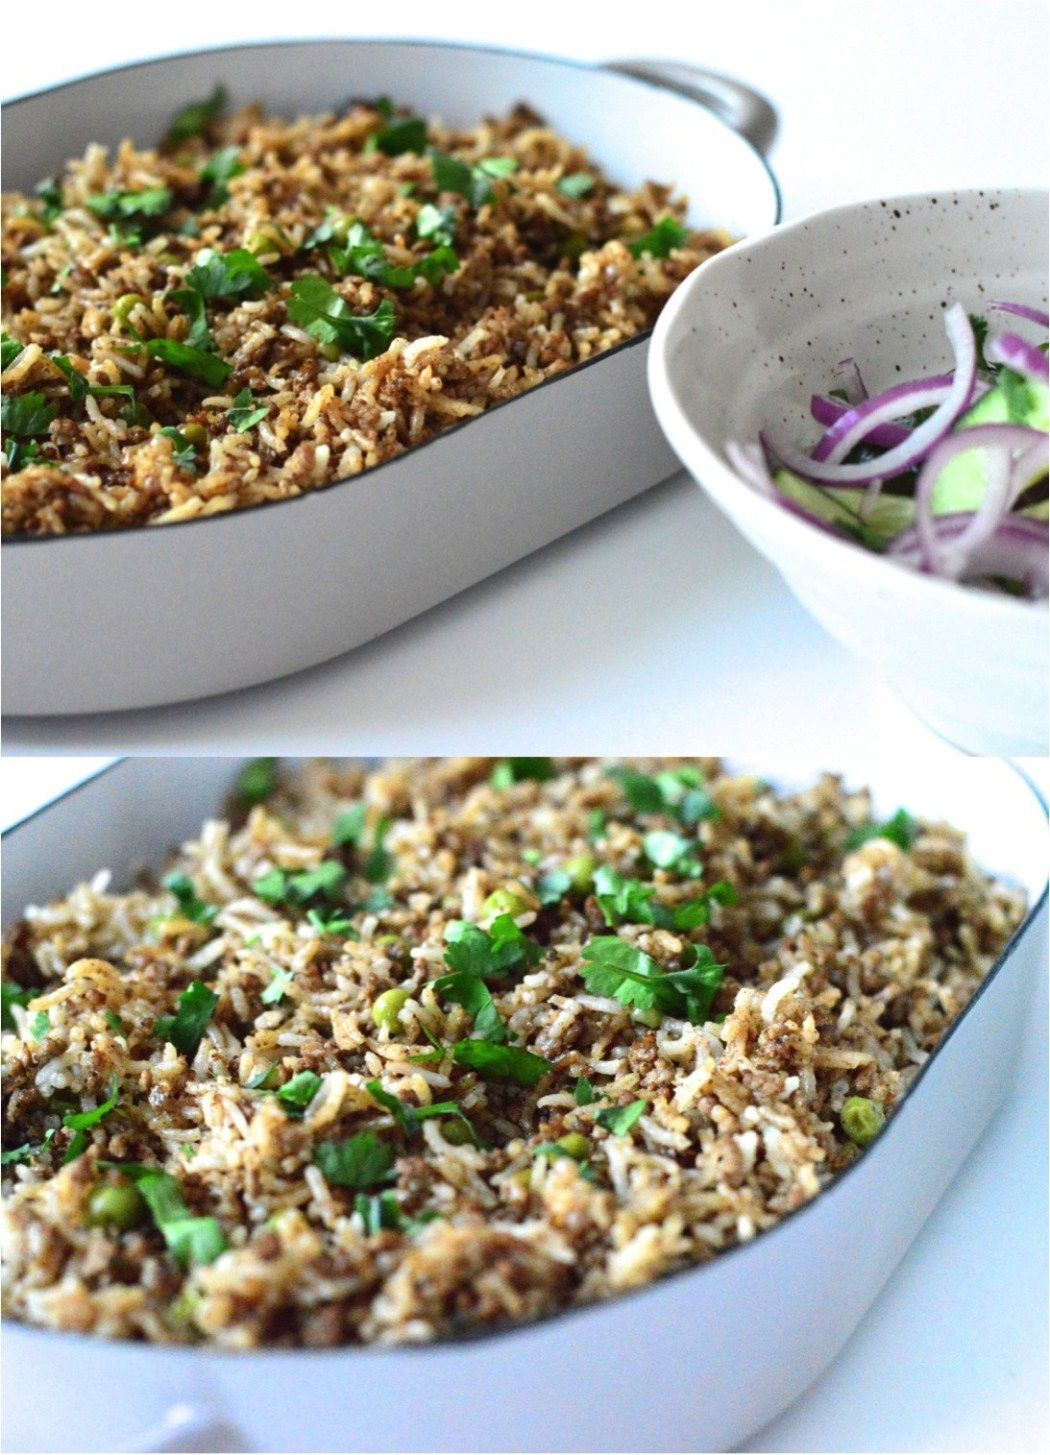 Spiced Lebanese rice with mince